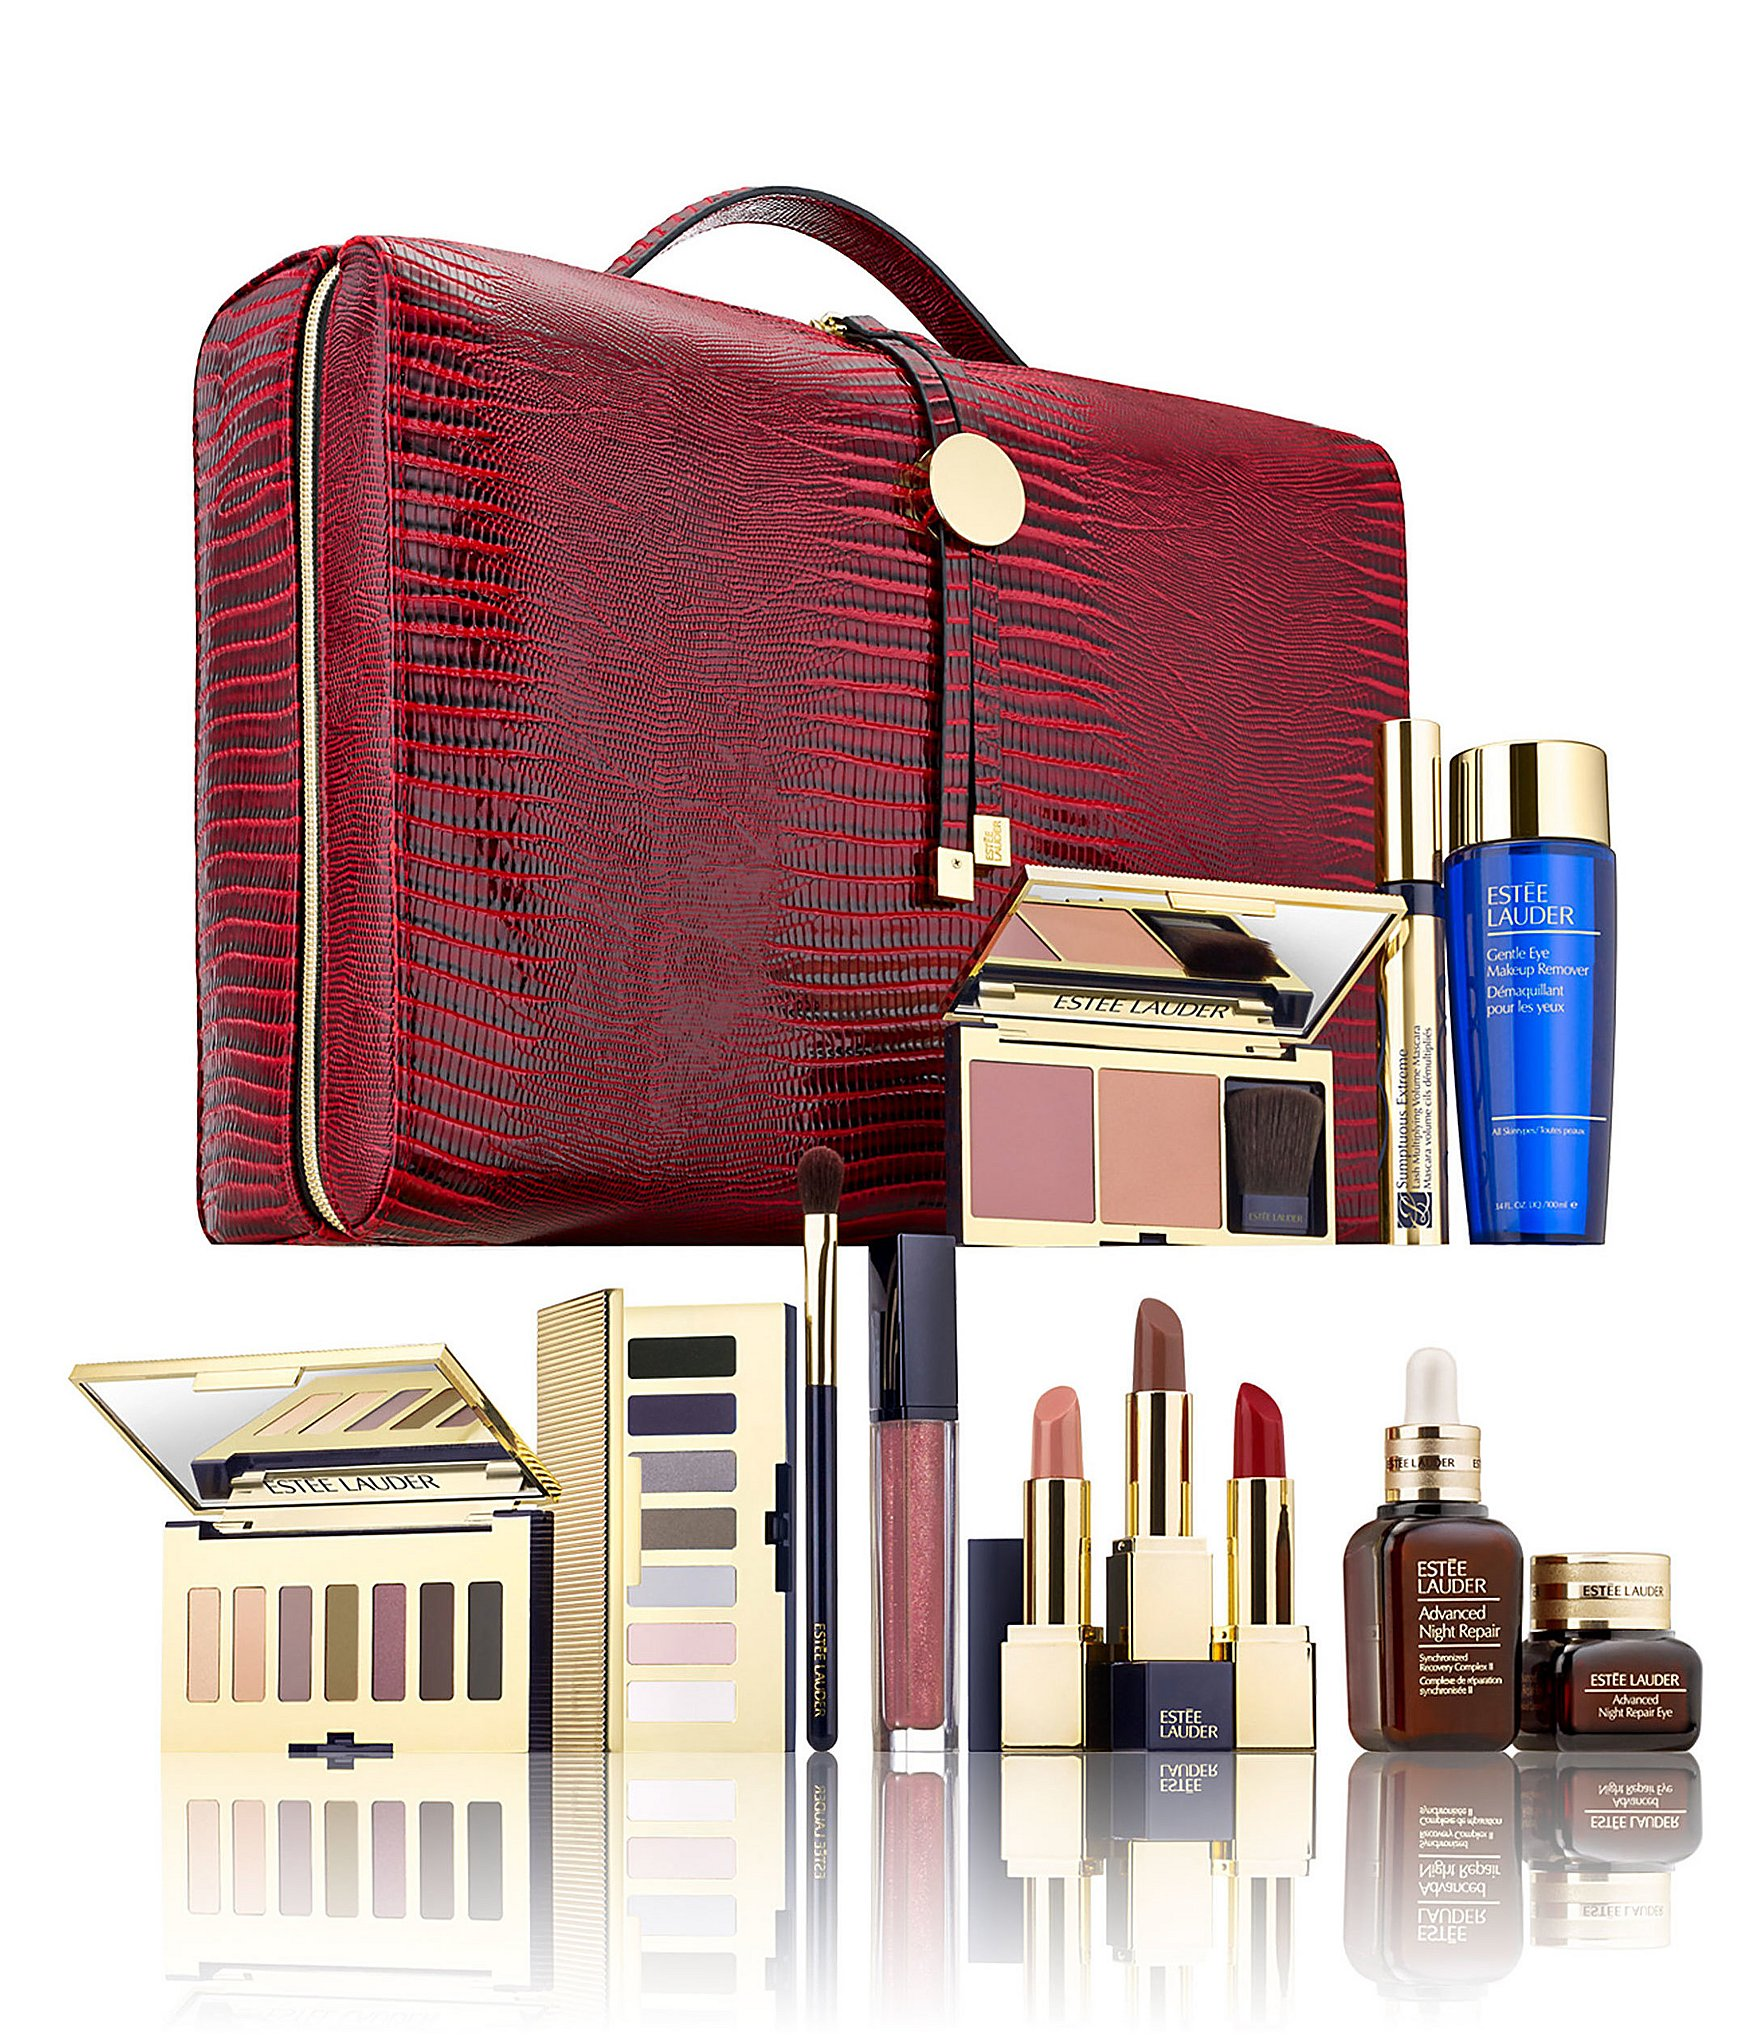 Estee Lauder Blockbuster Purchase with Purchase | Dillards